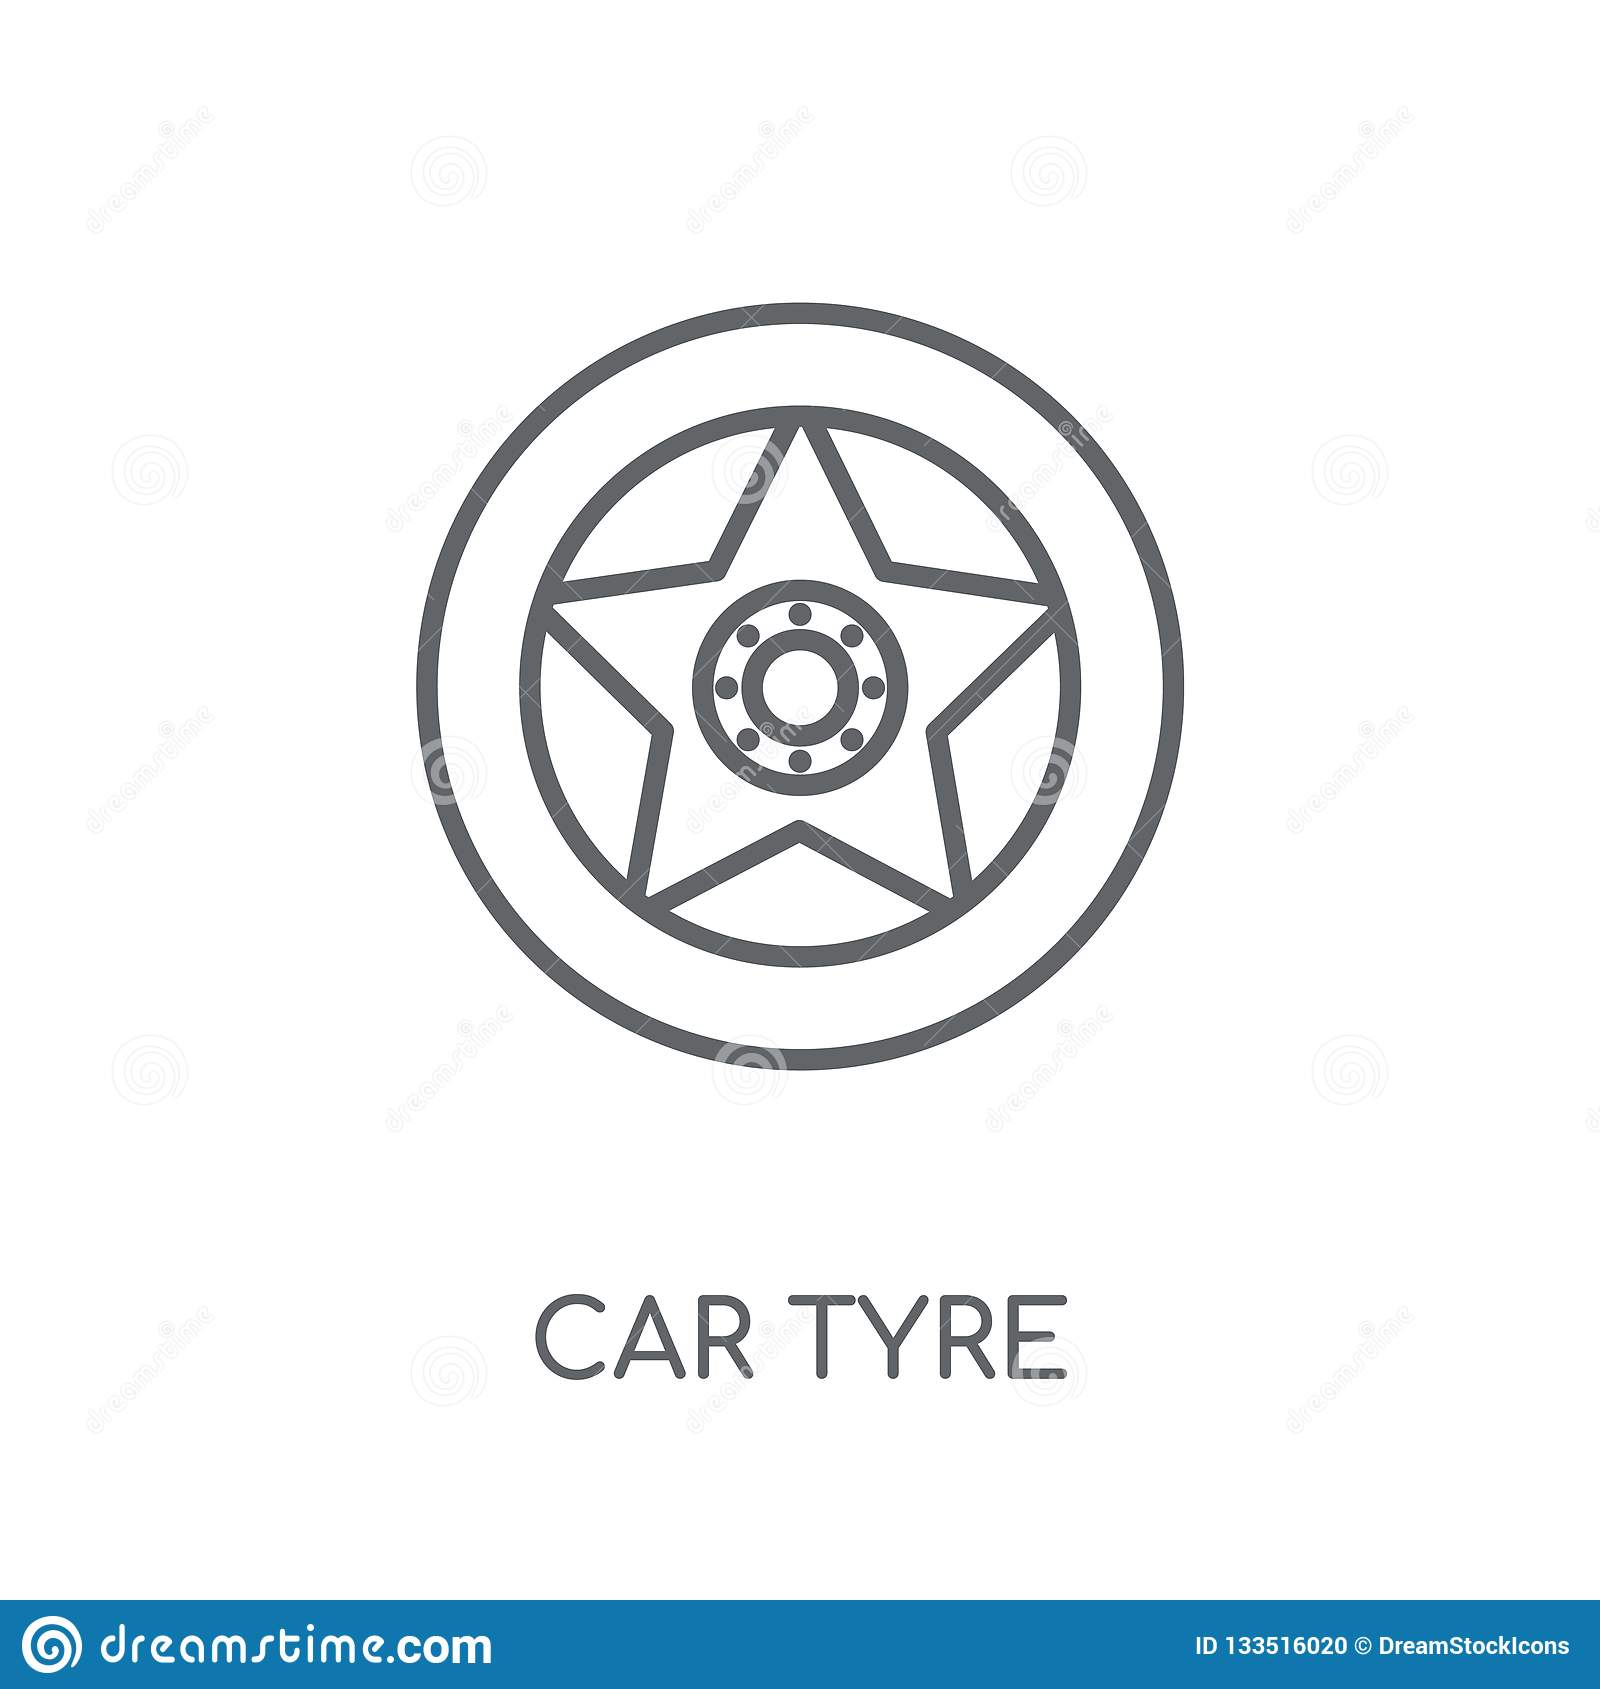 car tyre linear icon. Modern outline car tyre logo concept on wh